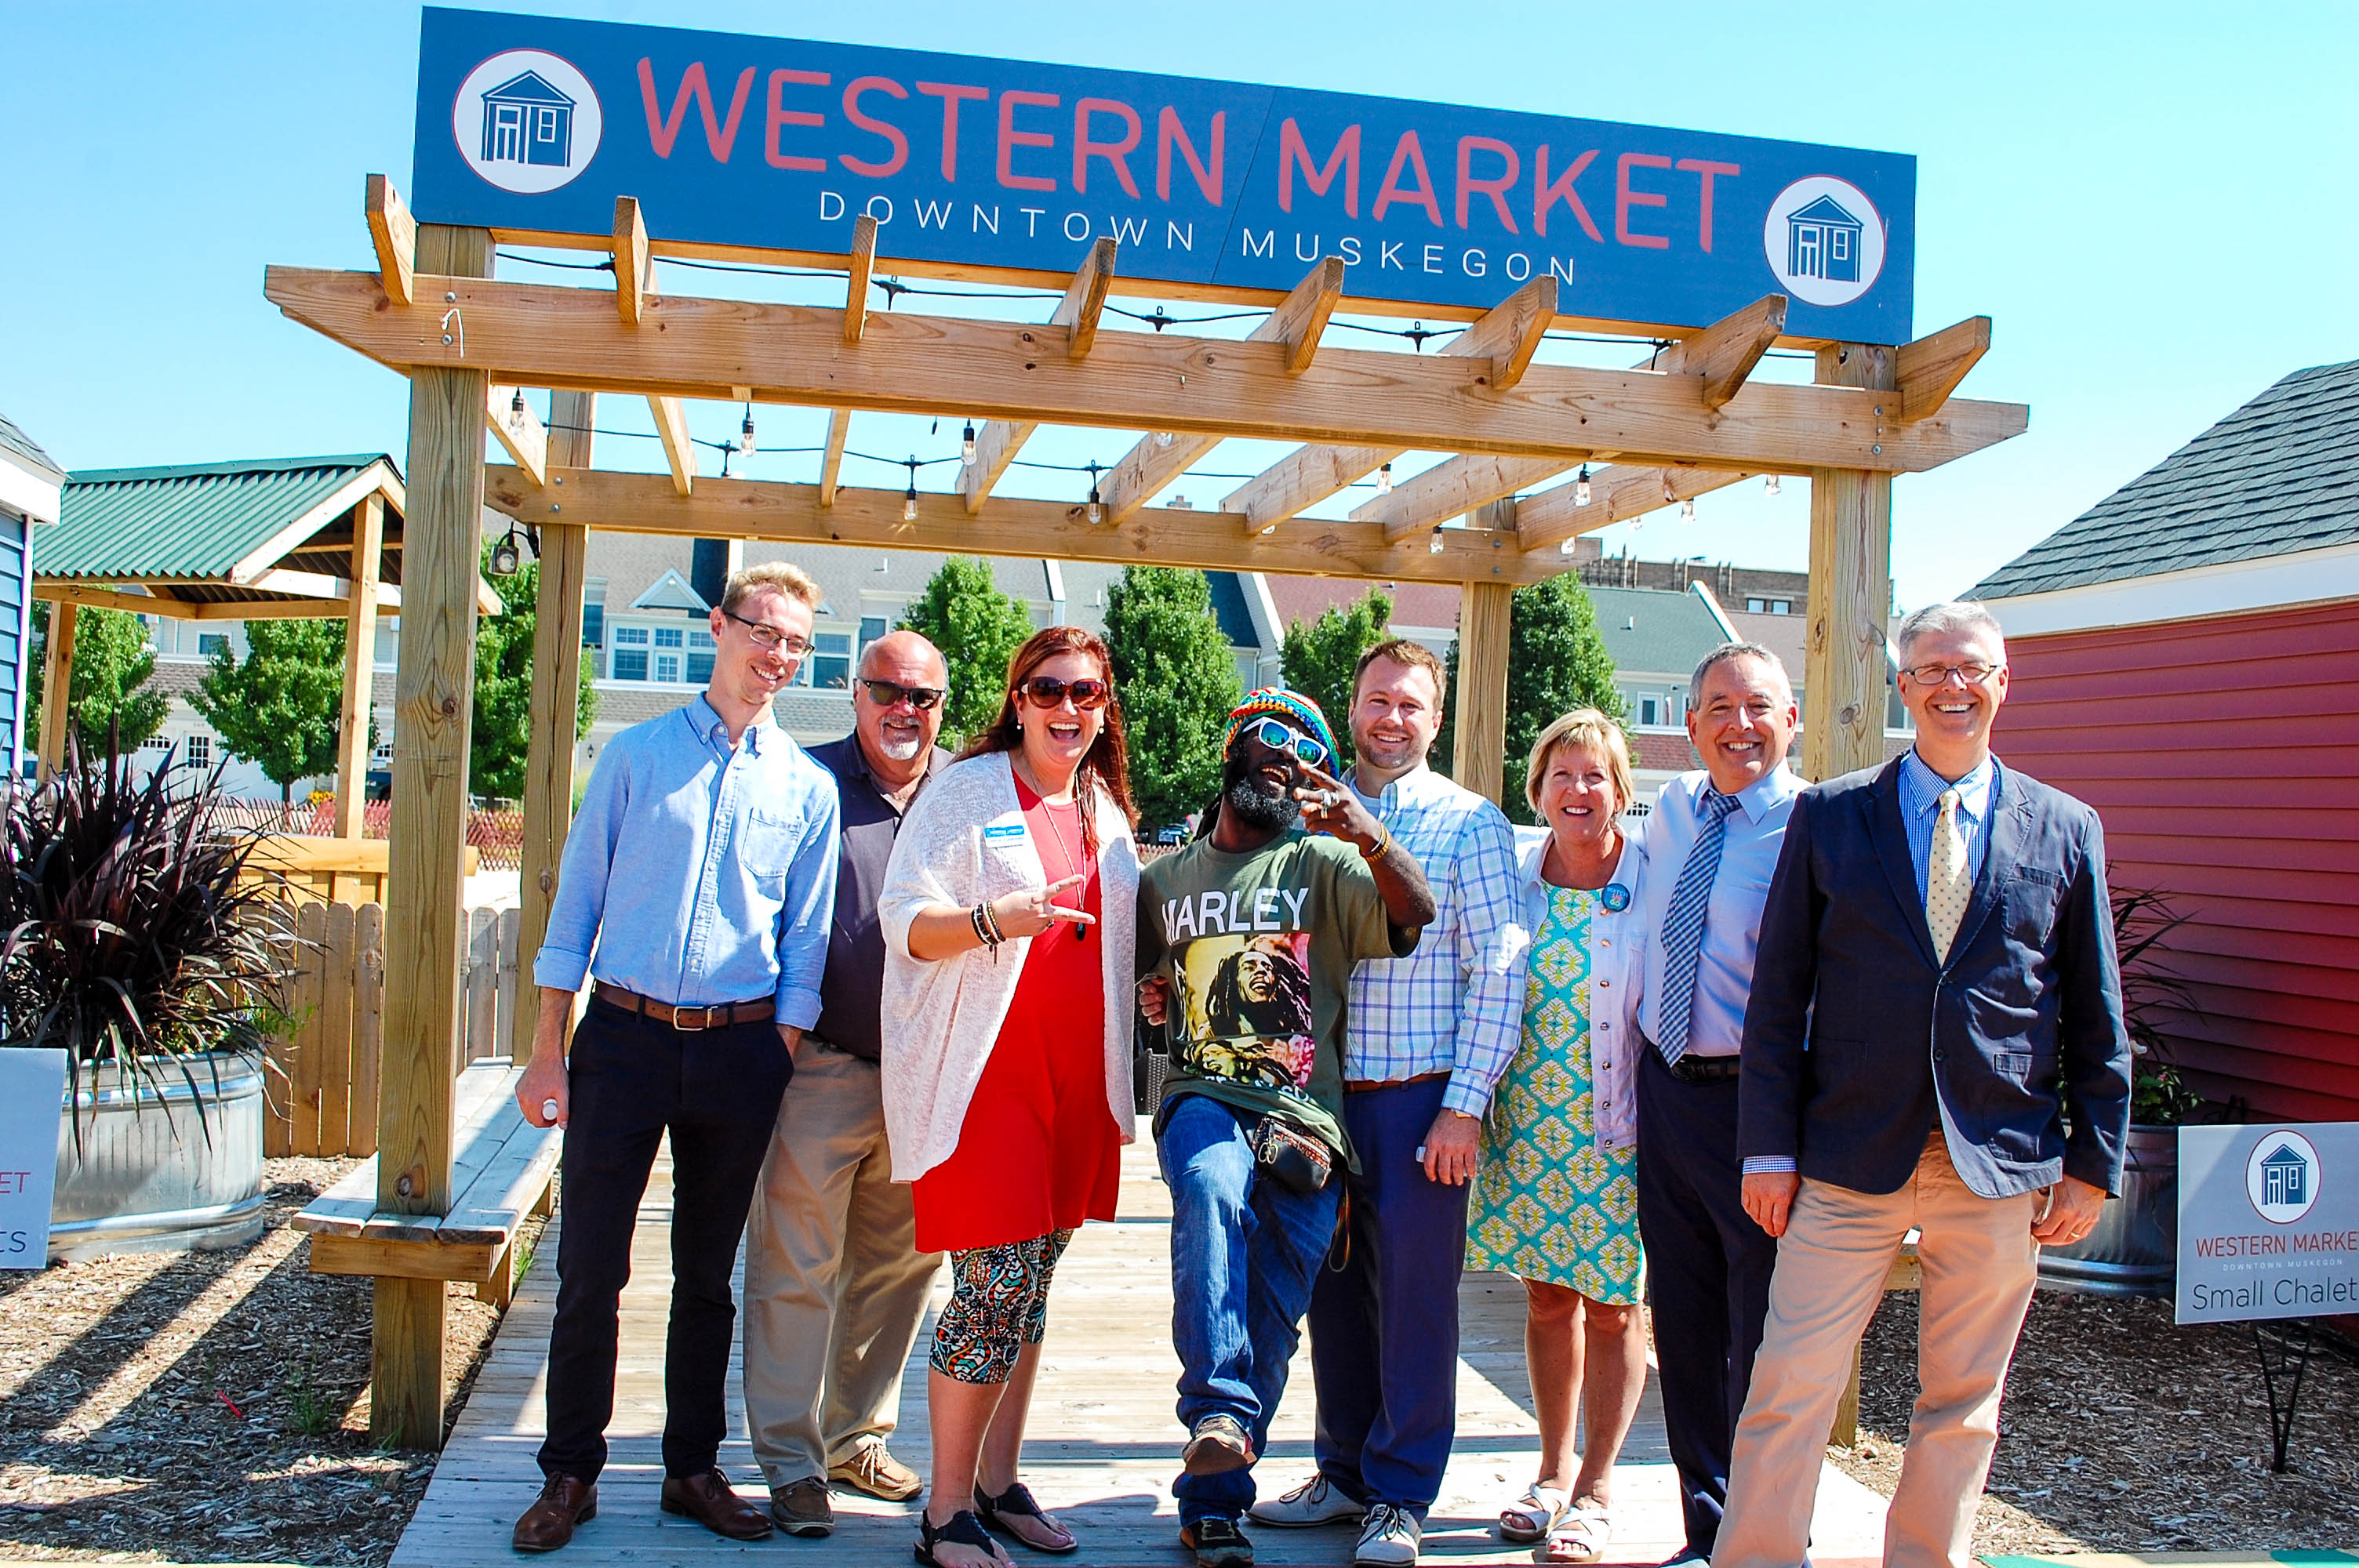 Chamber staff with Chuck Marohn and others at the Western Market in Downtown Muskegon